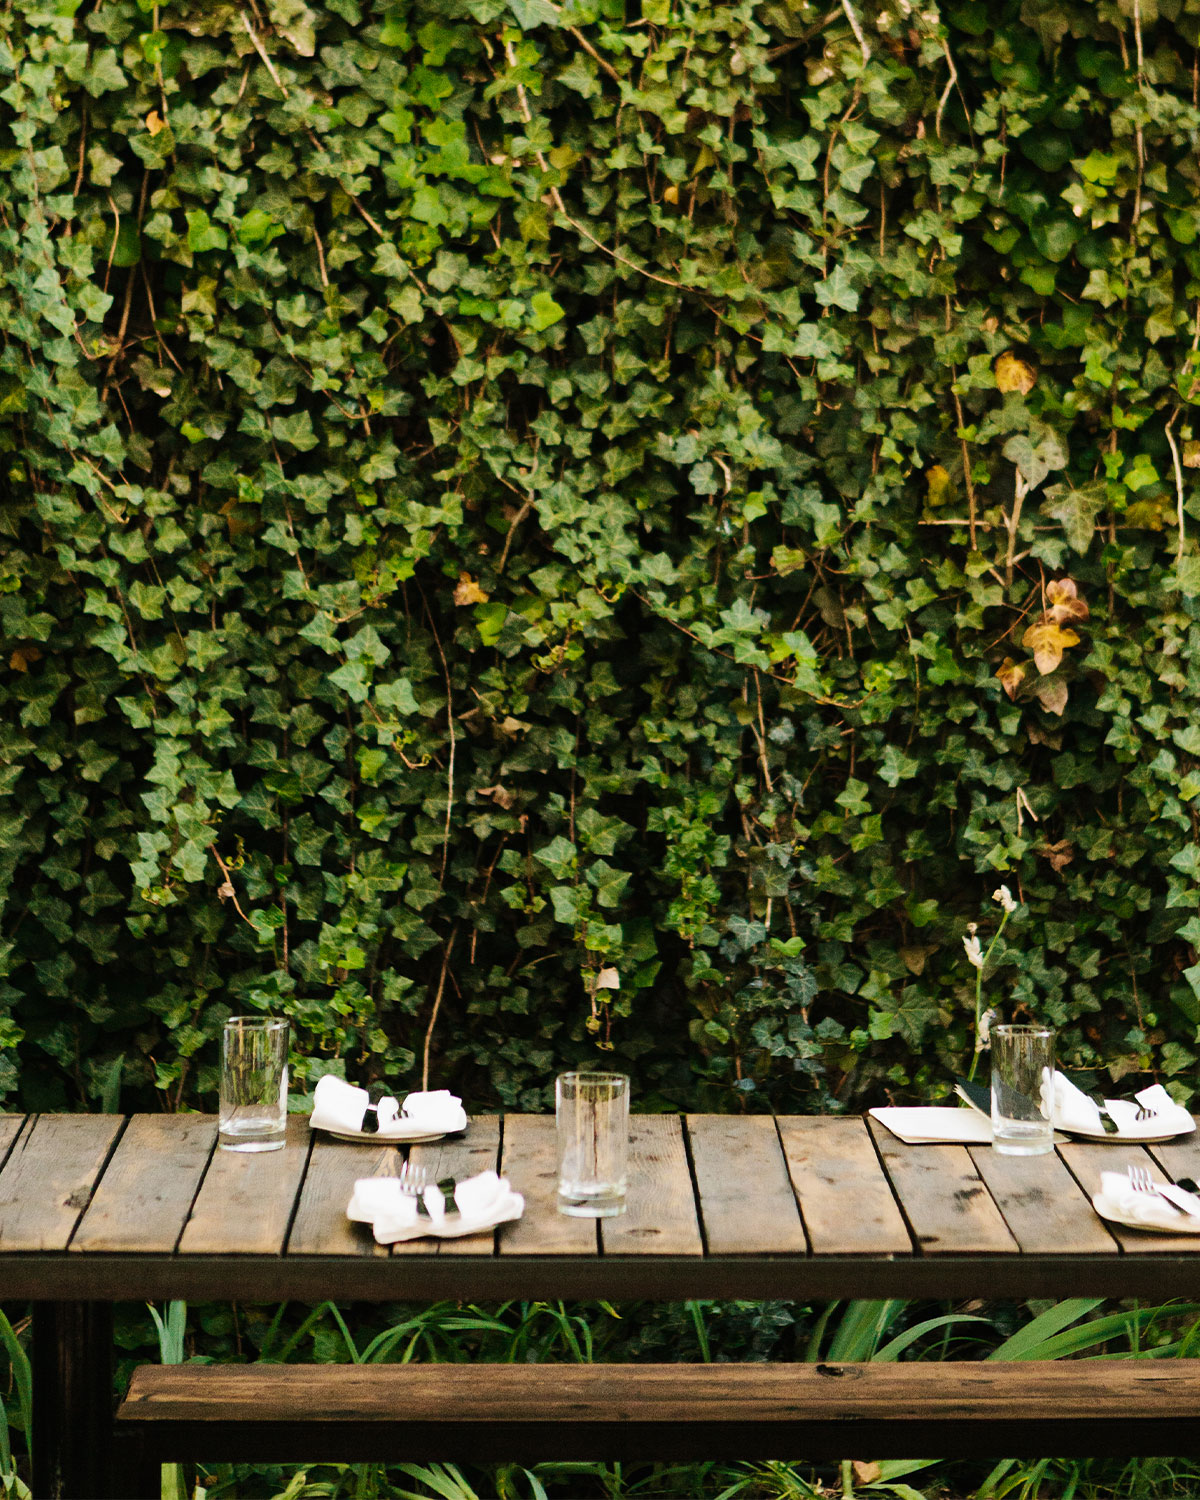 Restaurant patio with long vines covering the surrounding walls